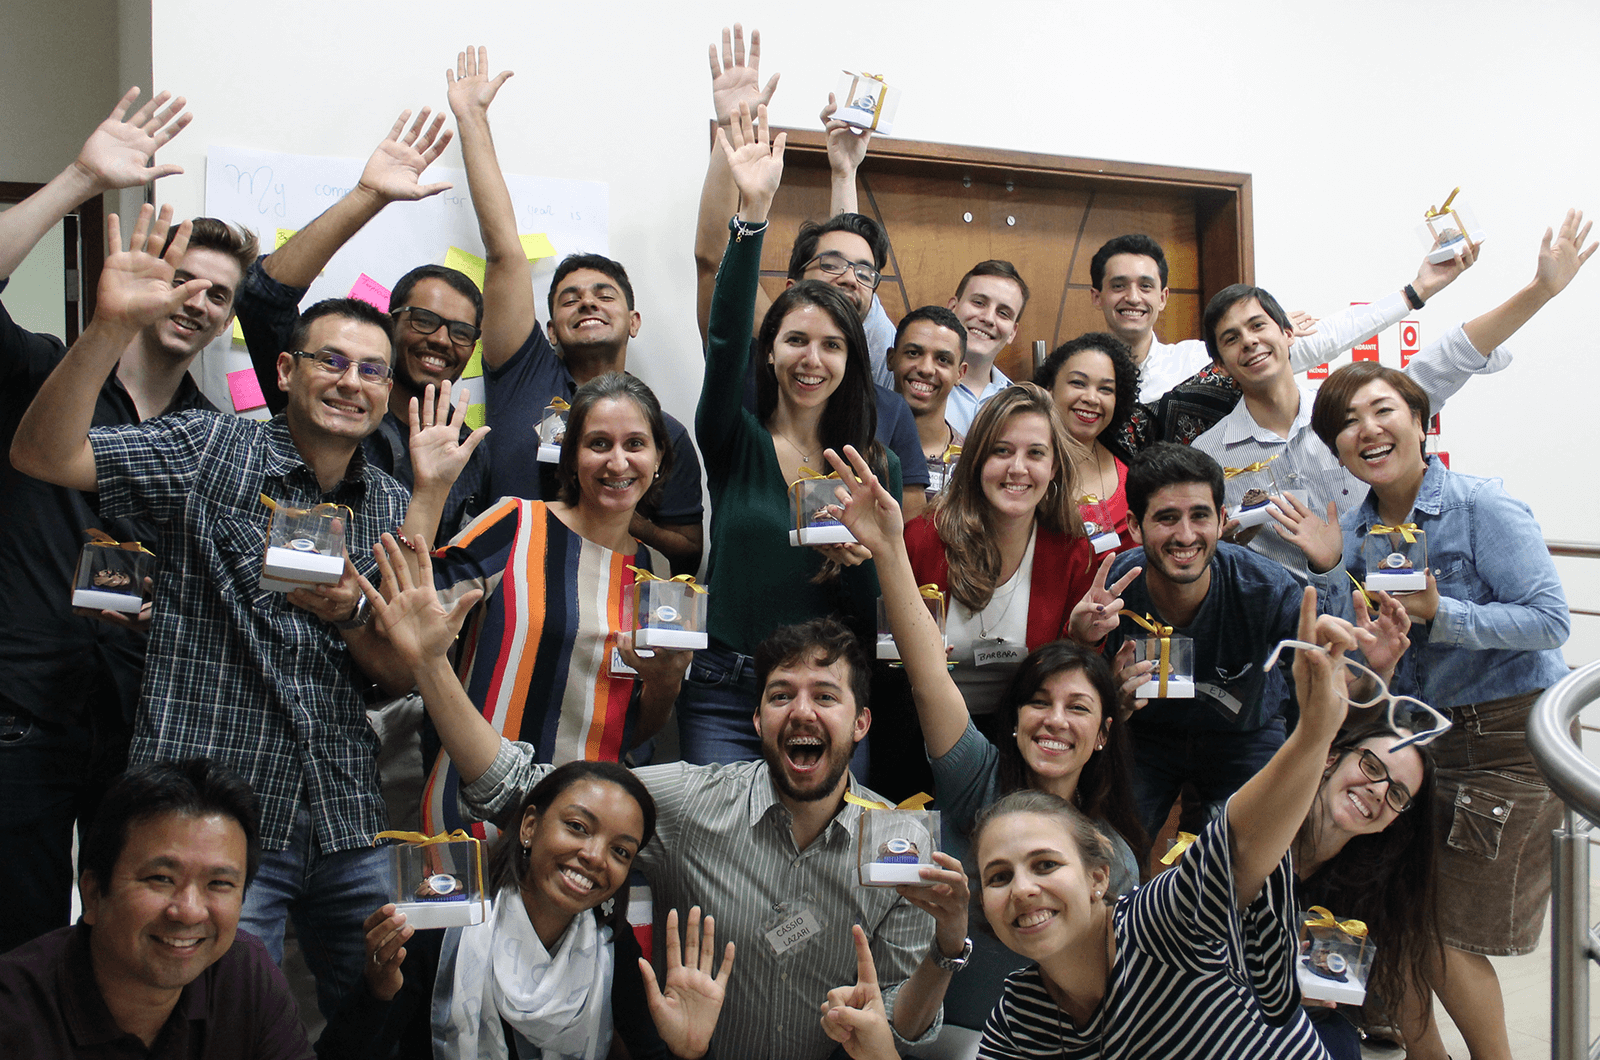 Campinas #1, which shares some Toastmaster roots with the Minnesota Returned Peace Corps Volunteers club, celebrates its first anniversary in Sao Paulo, Brazil.